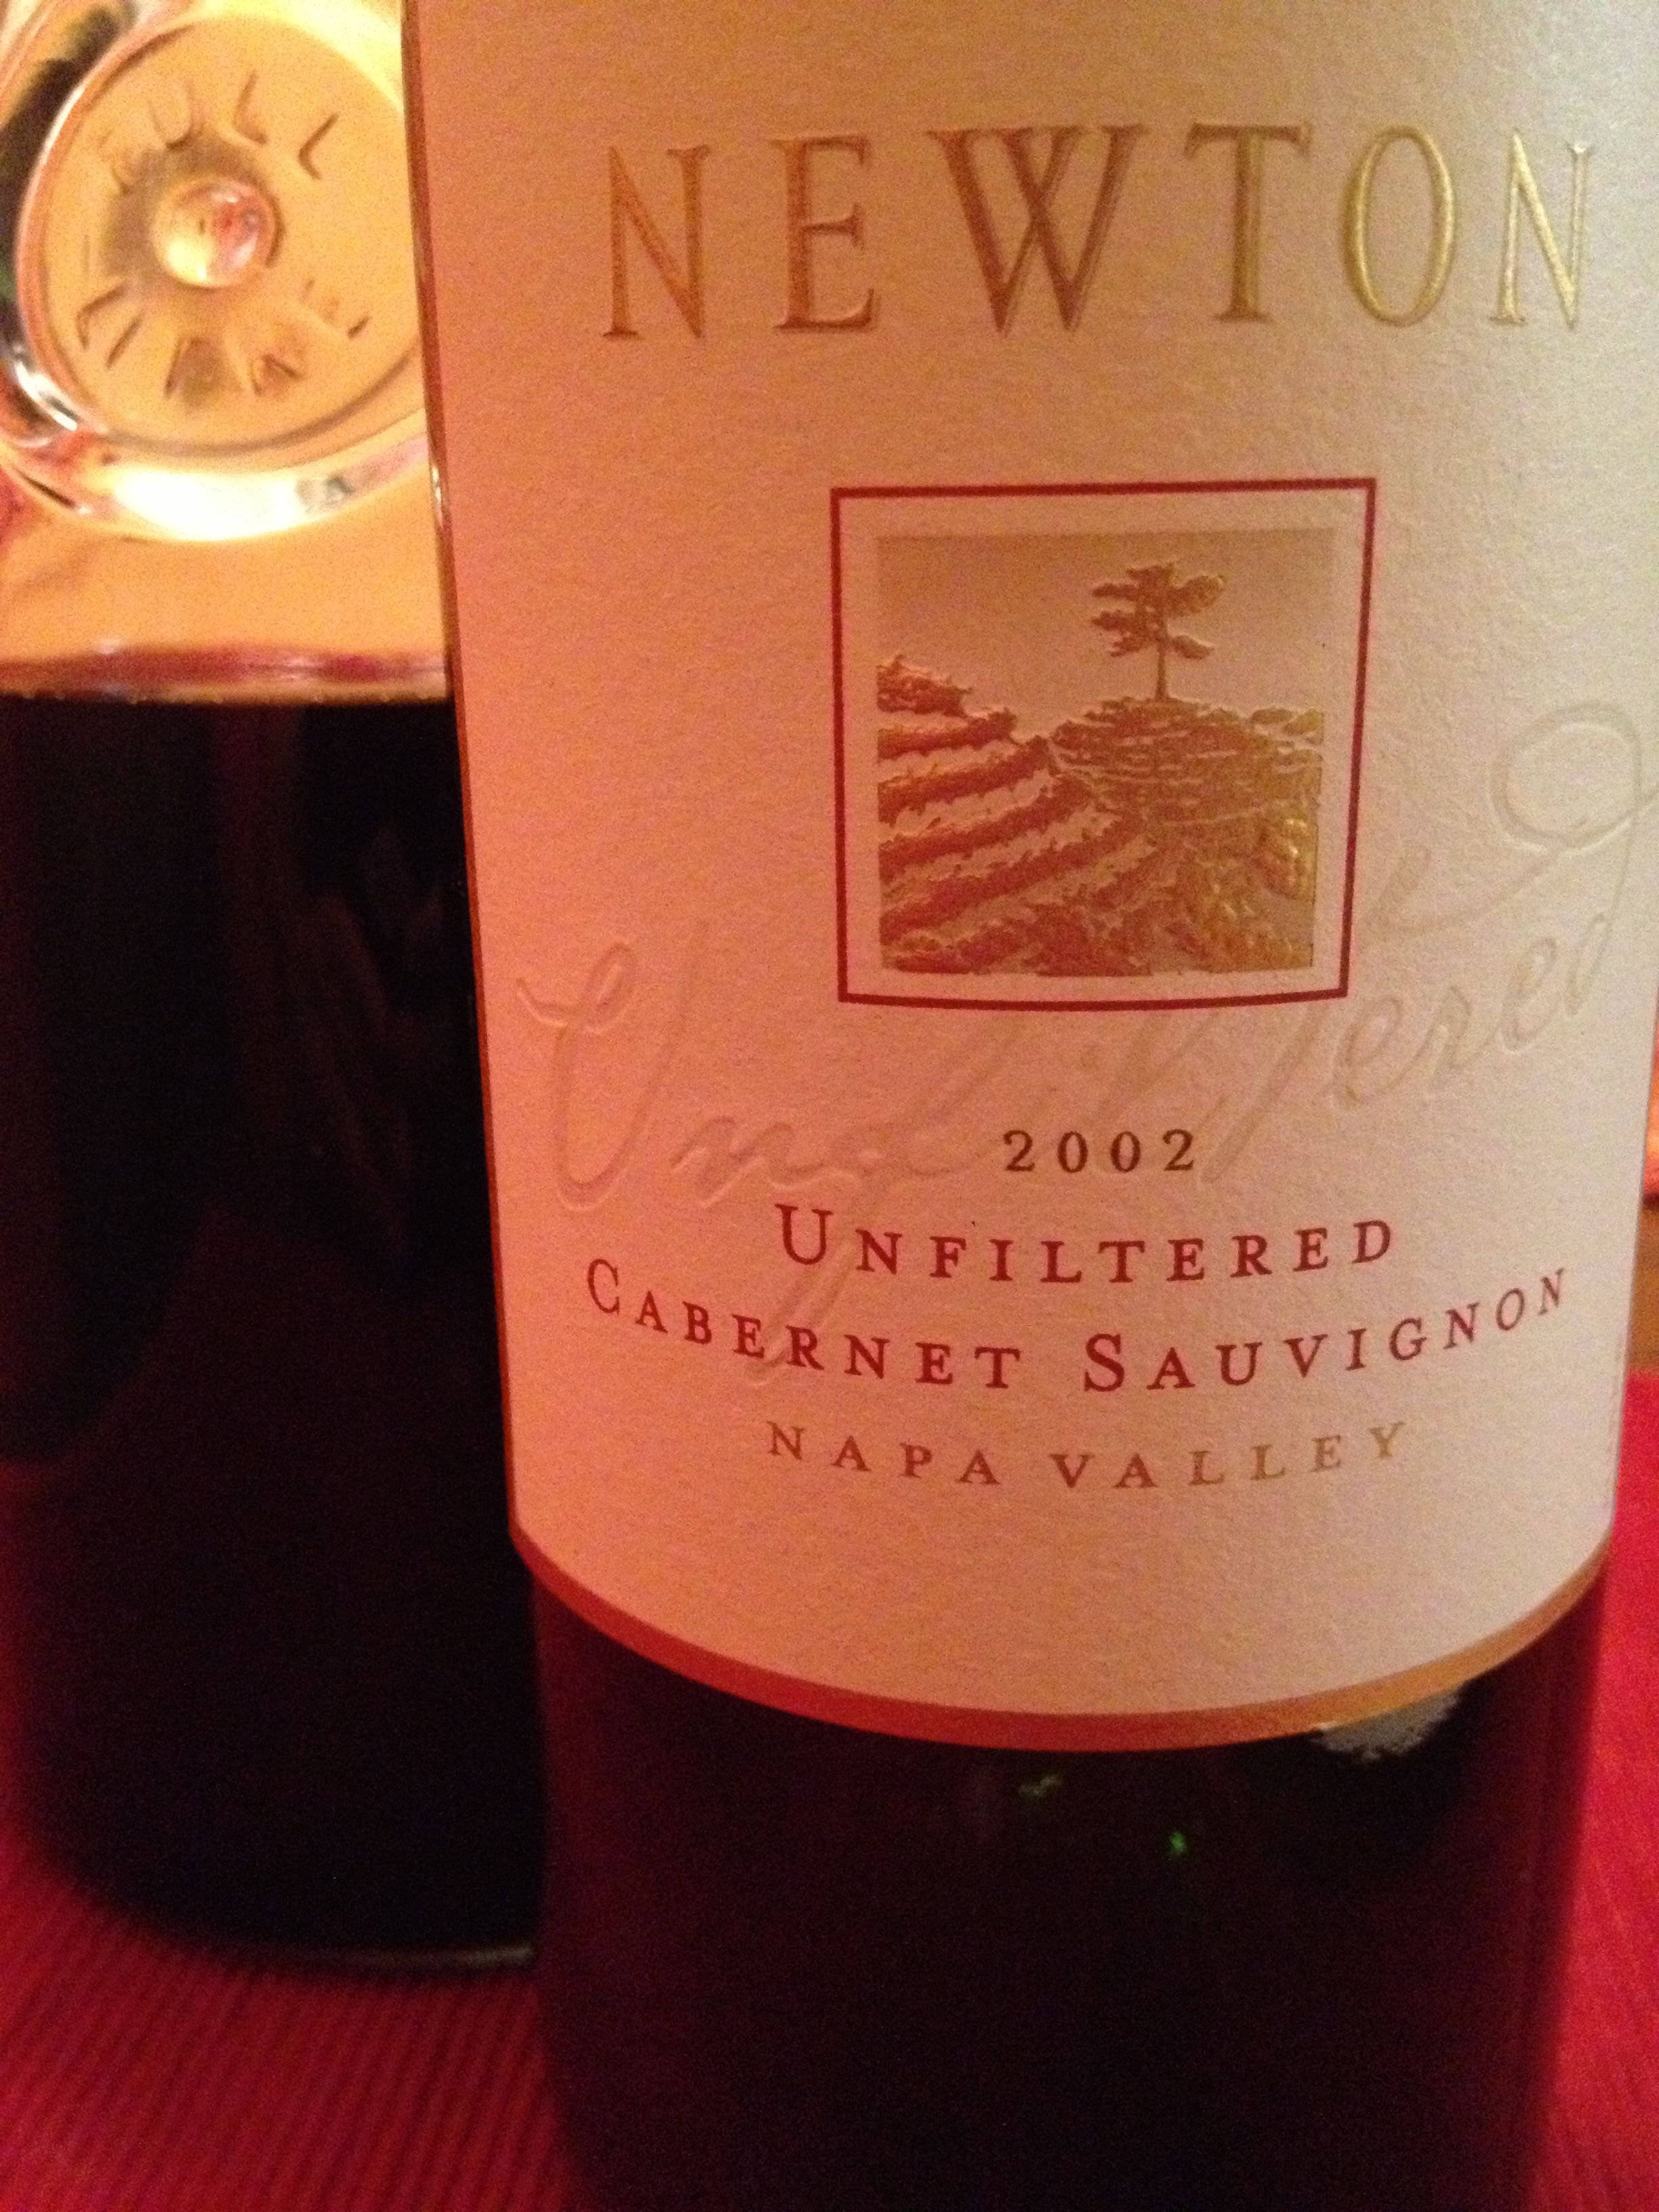 2002 Newton Unfiltered Cab Breathing Before Holiday Dinner With Friends I M Looking Forward To This One Dinner With Friends Wine Time Wine Bottle